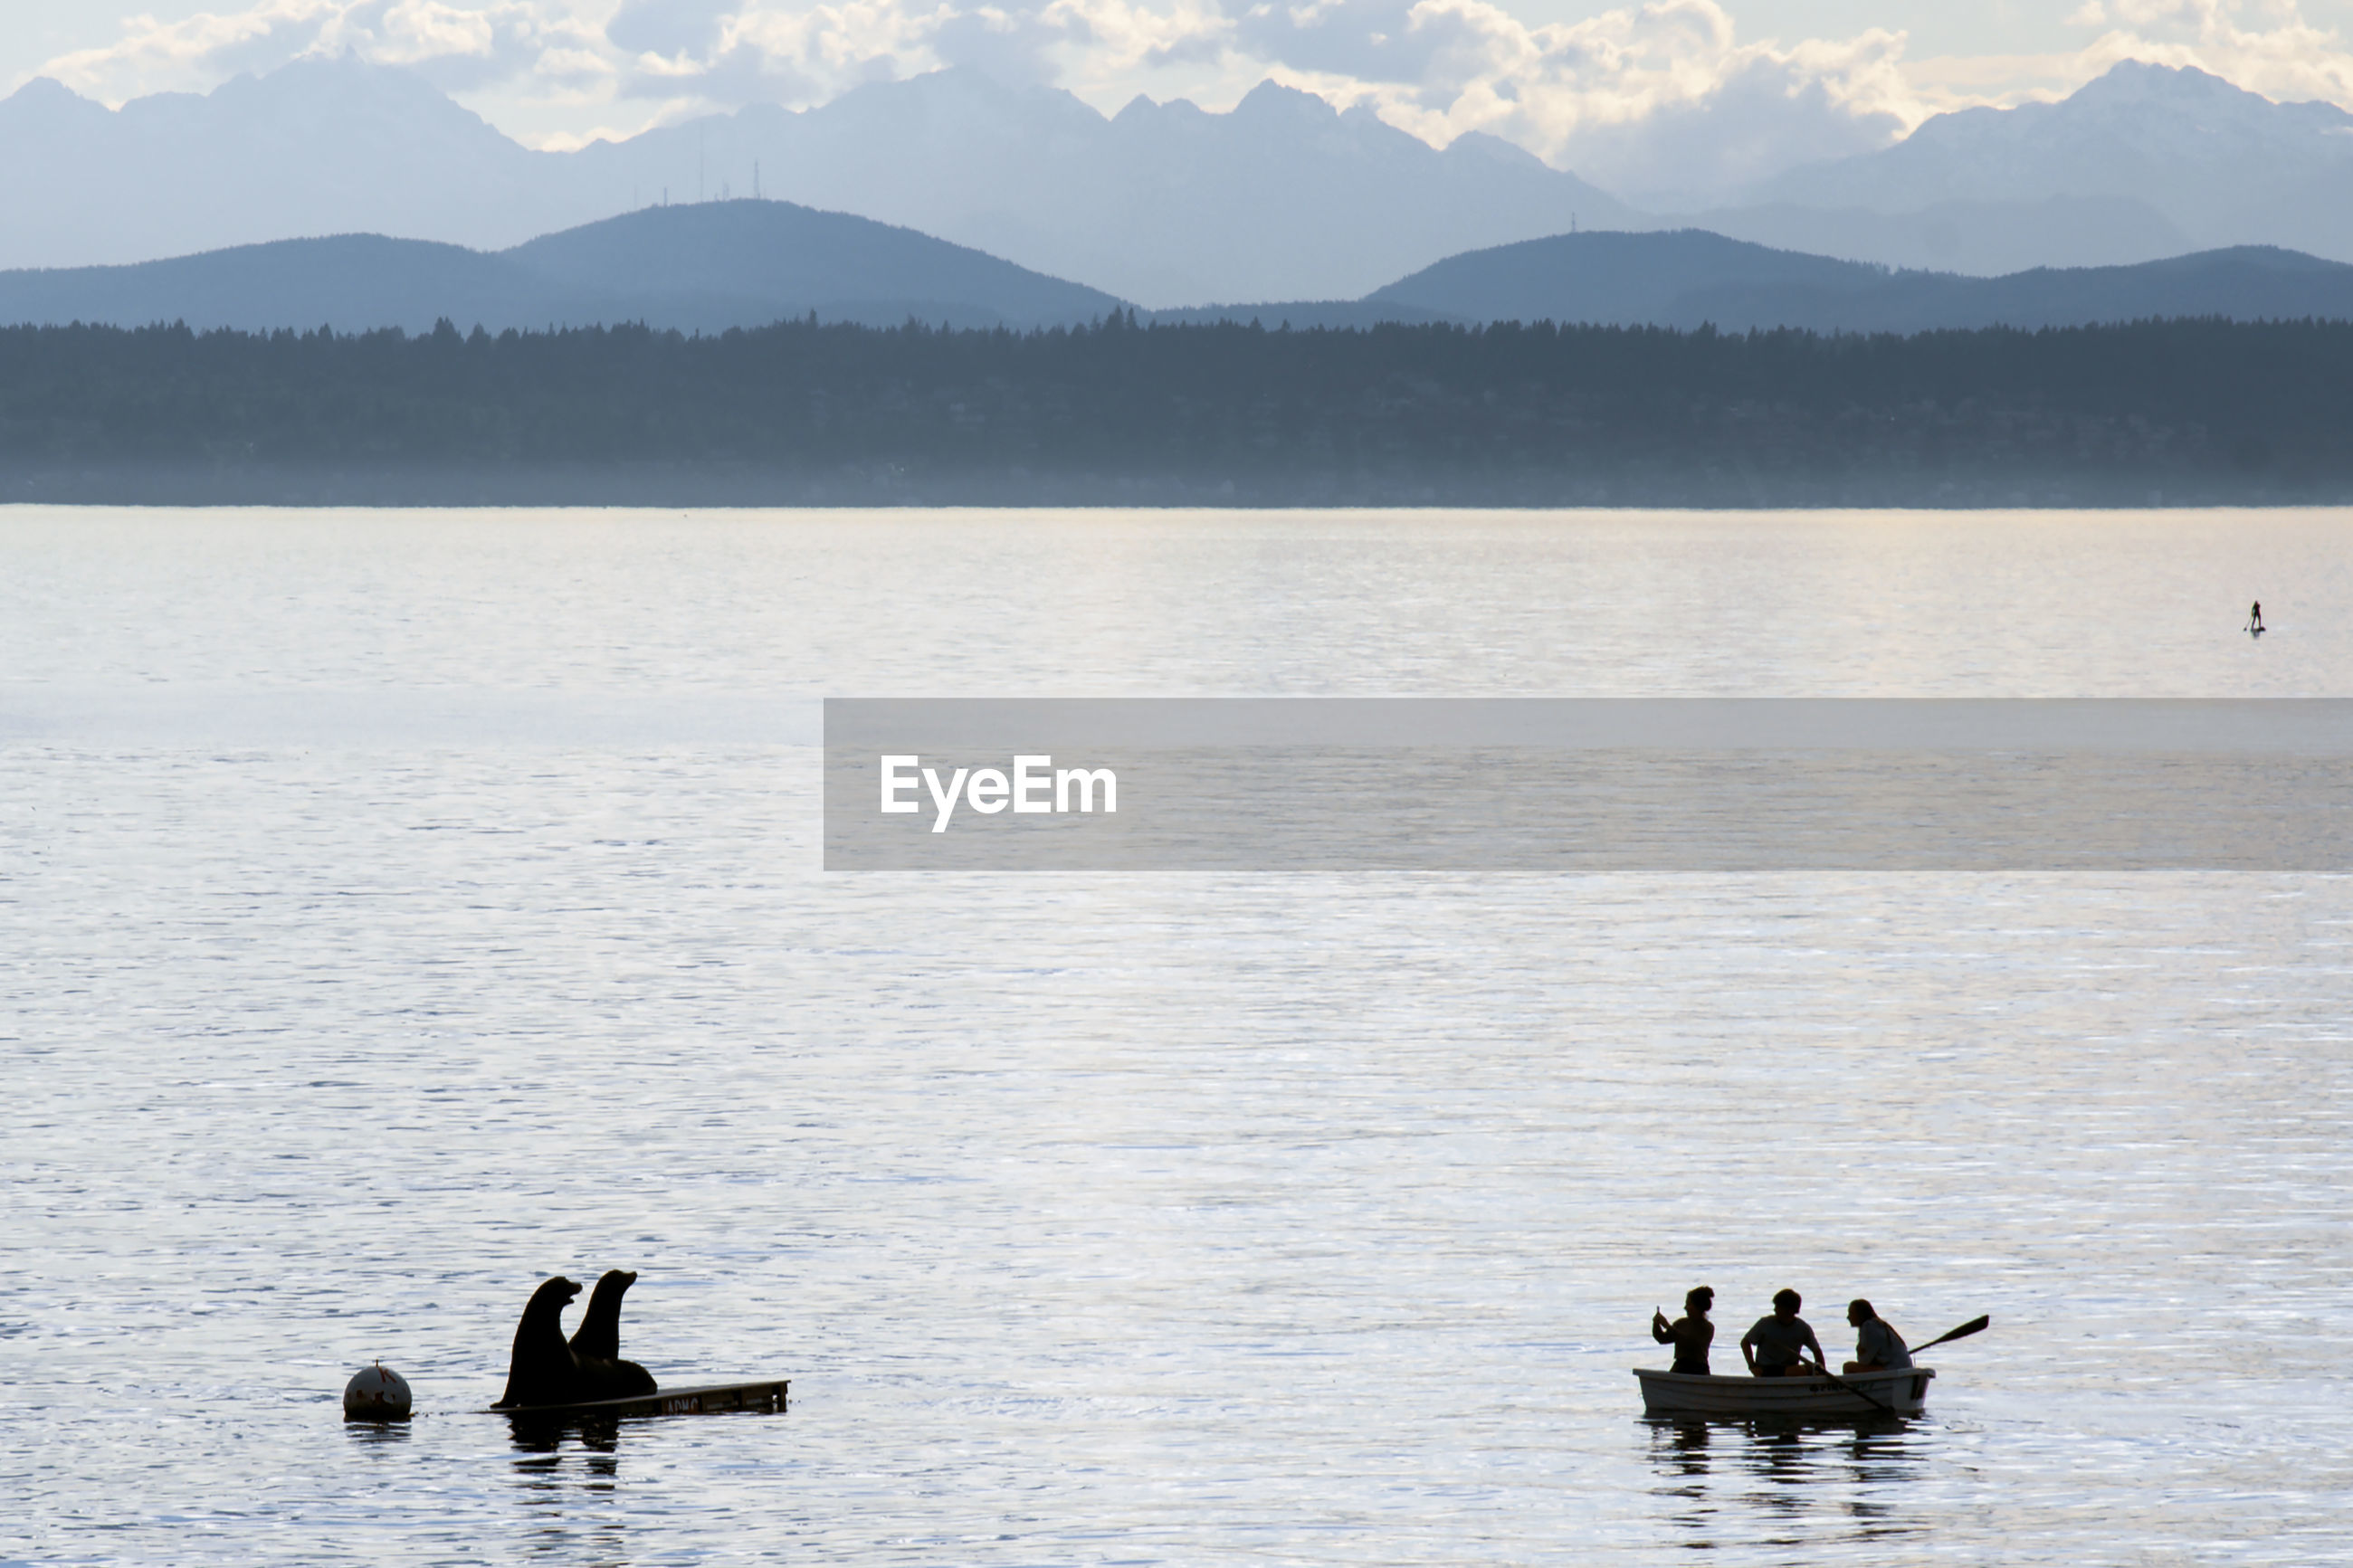 Silhouetted sea lions and young people in a row boat out on puget sound near seattle, posing